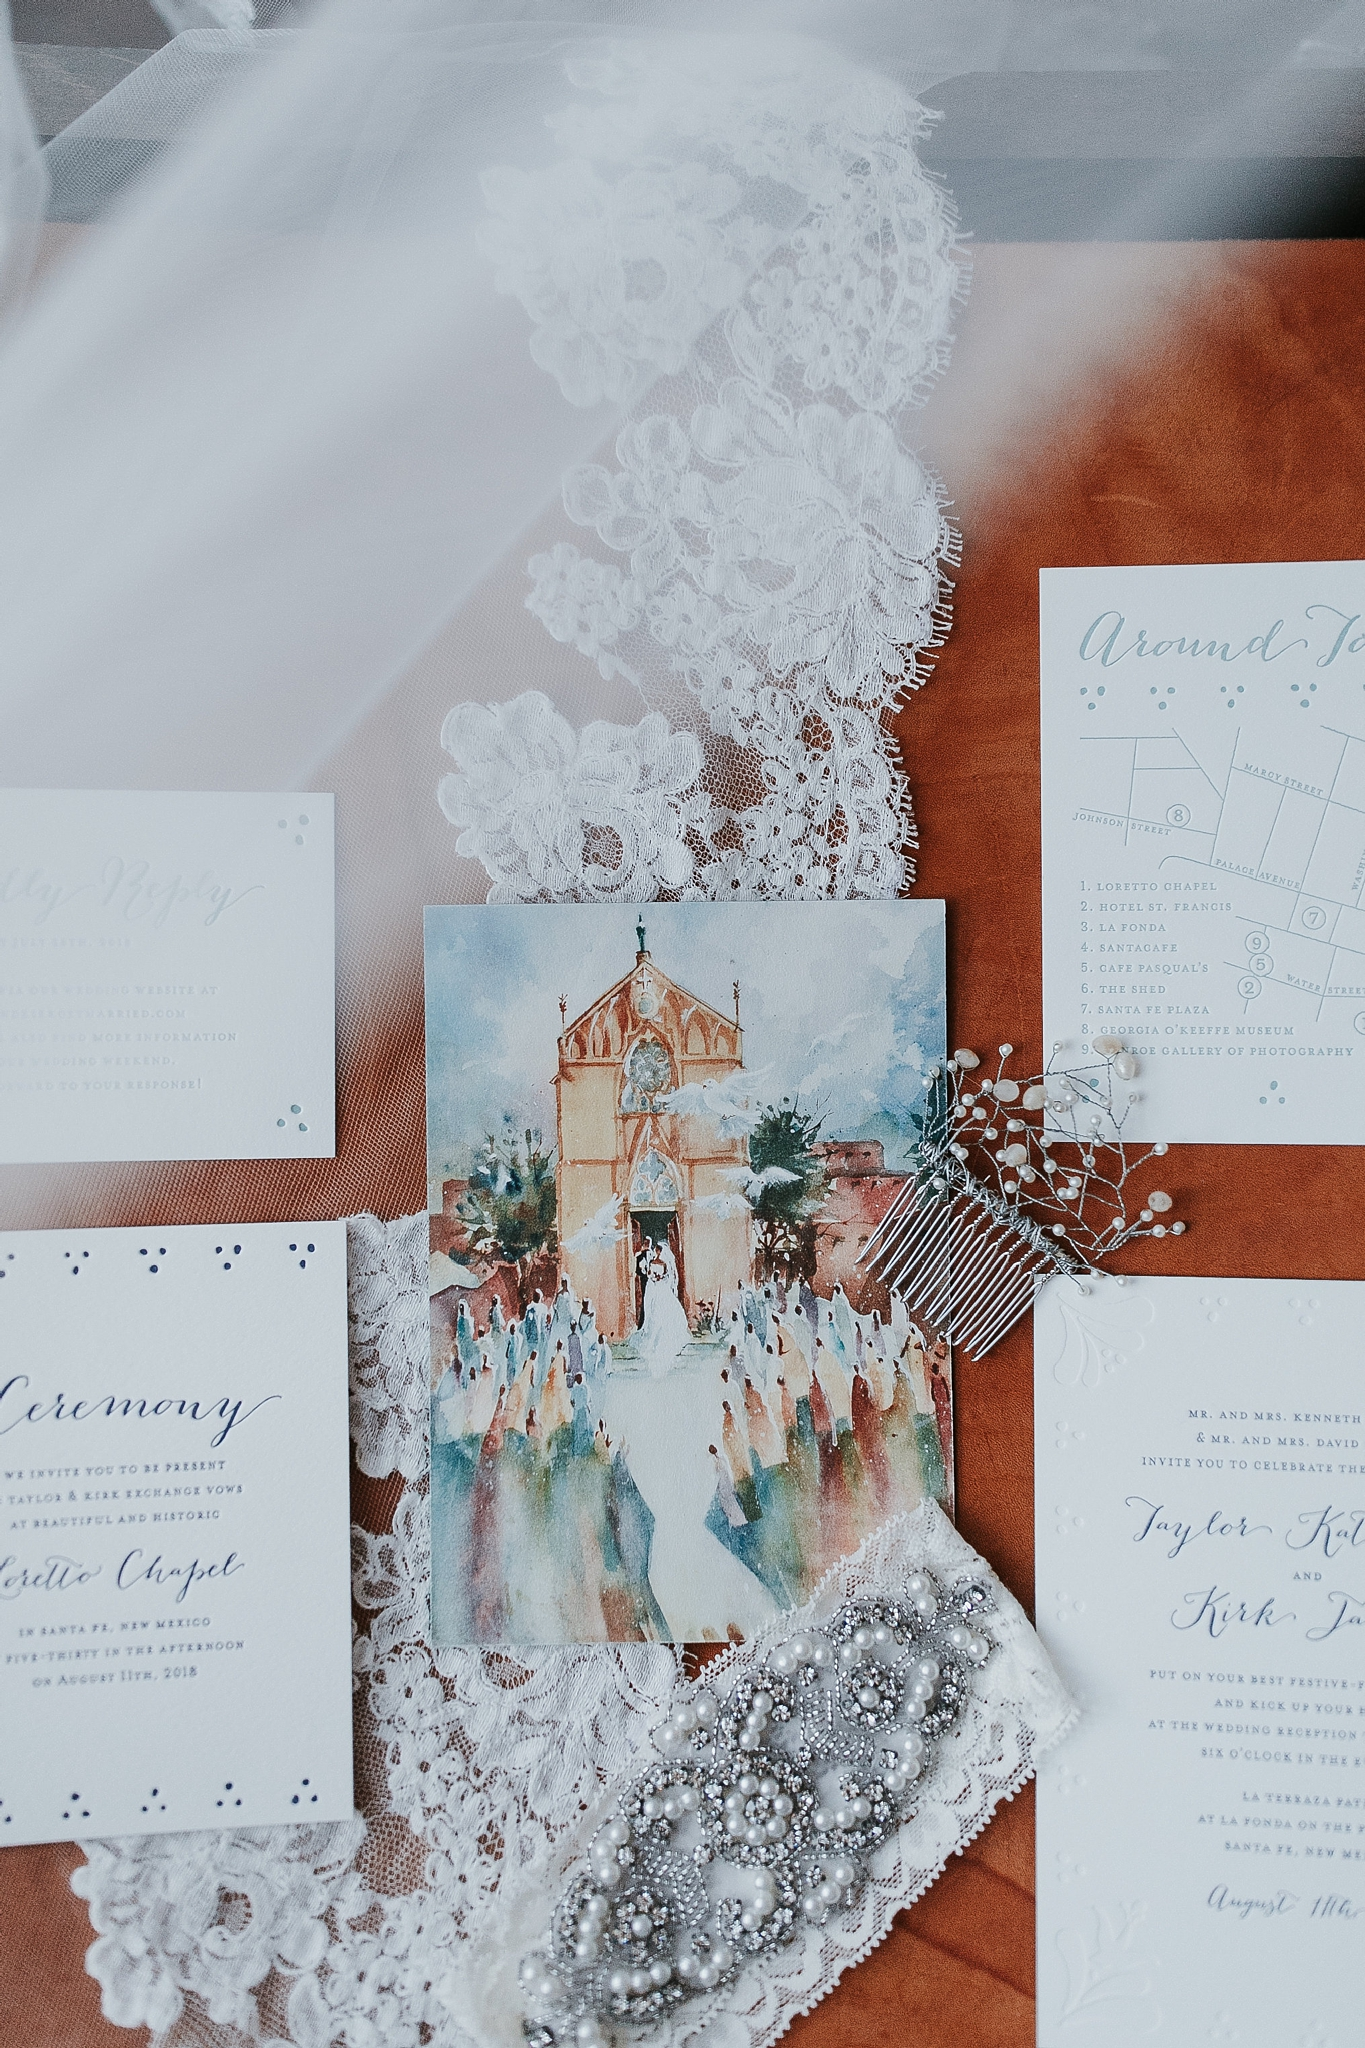 Alicia+lucia+photography+-+albuquerque+wedding+photographer+-+santa+fe+wedding+photography+-+new+mexico+wedding+photographer+-+new+mexico+wedding+-+wedding+invitations+-+invitation+suite+-+wedding+inspo_0002.jpg